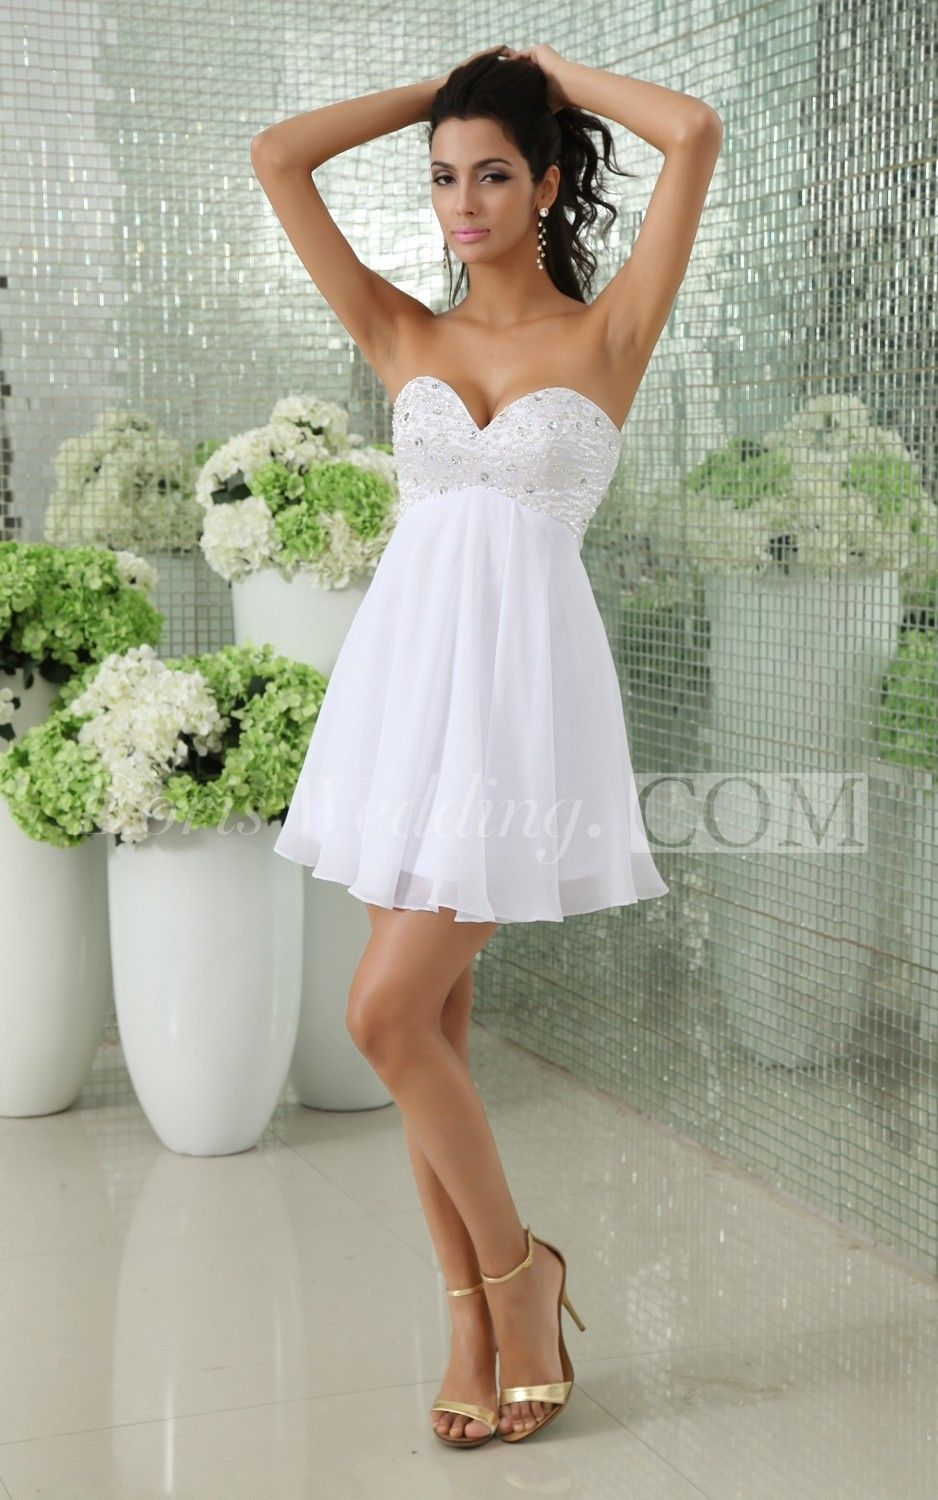 Sweetheart Chiffon Short Wedding Reception Dress With Beaded Top And Lace Up White